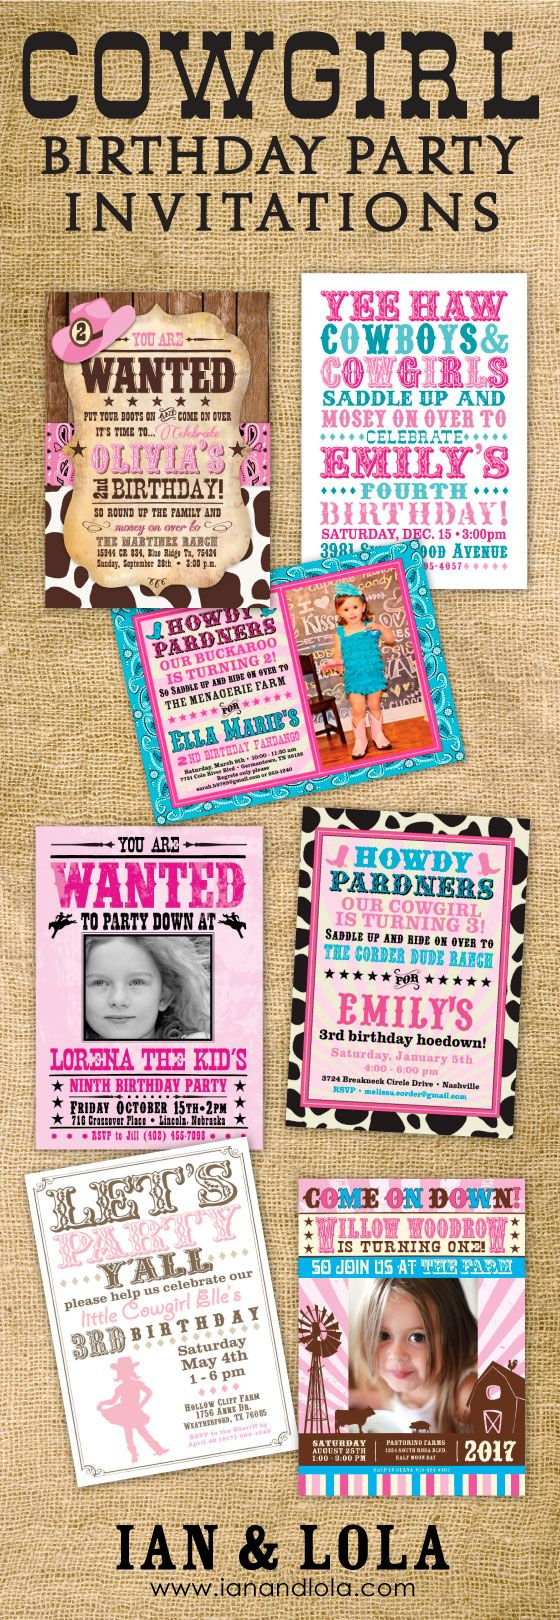 Cowboy party invitation ideas - Bandana Burlap Rustic And Western Shop For Cute And Fully Customizable Cowgirl And Farm Style Birthday Party Invitations At Ian And Lola